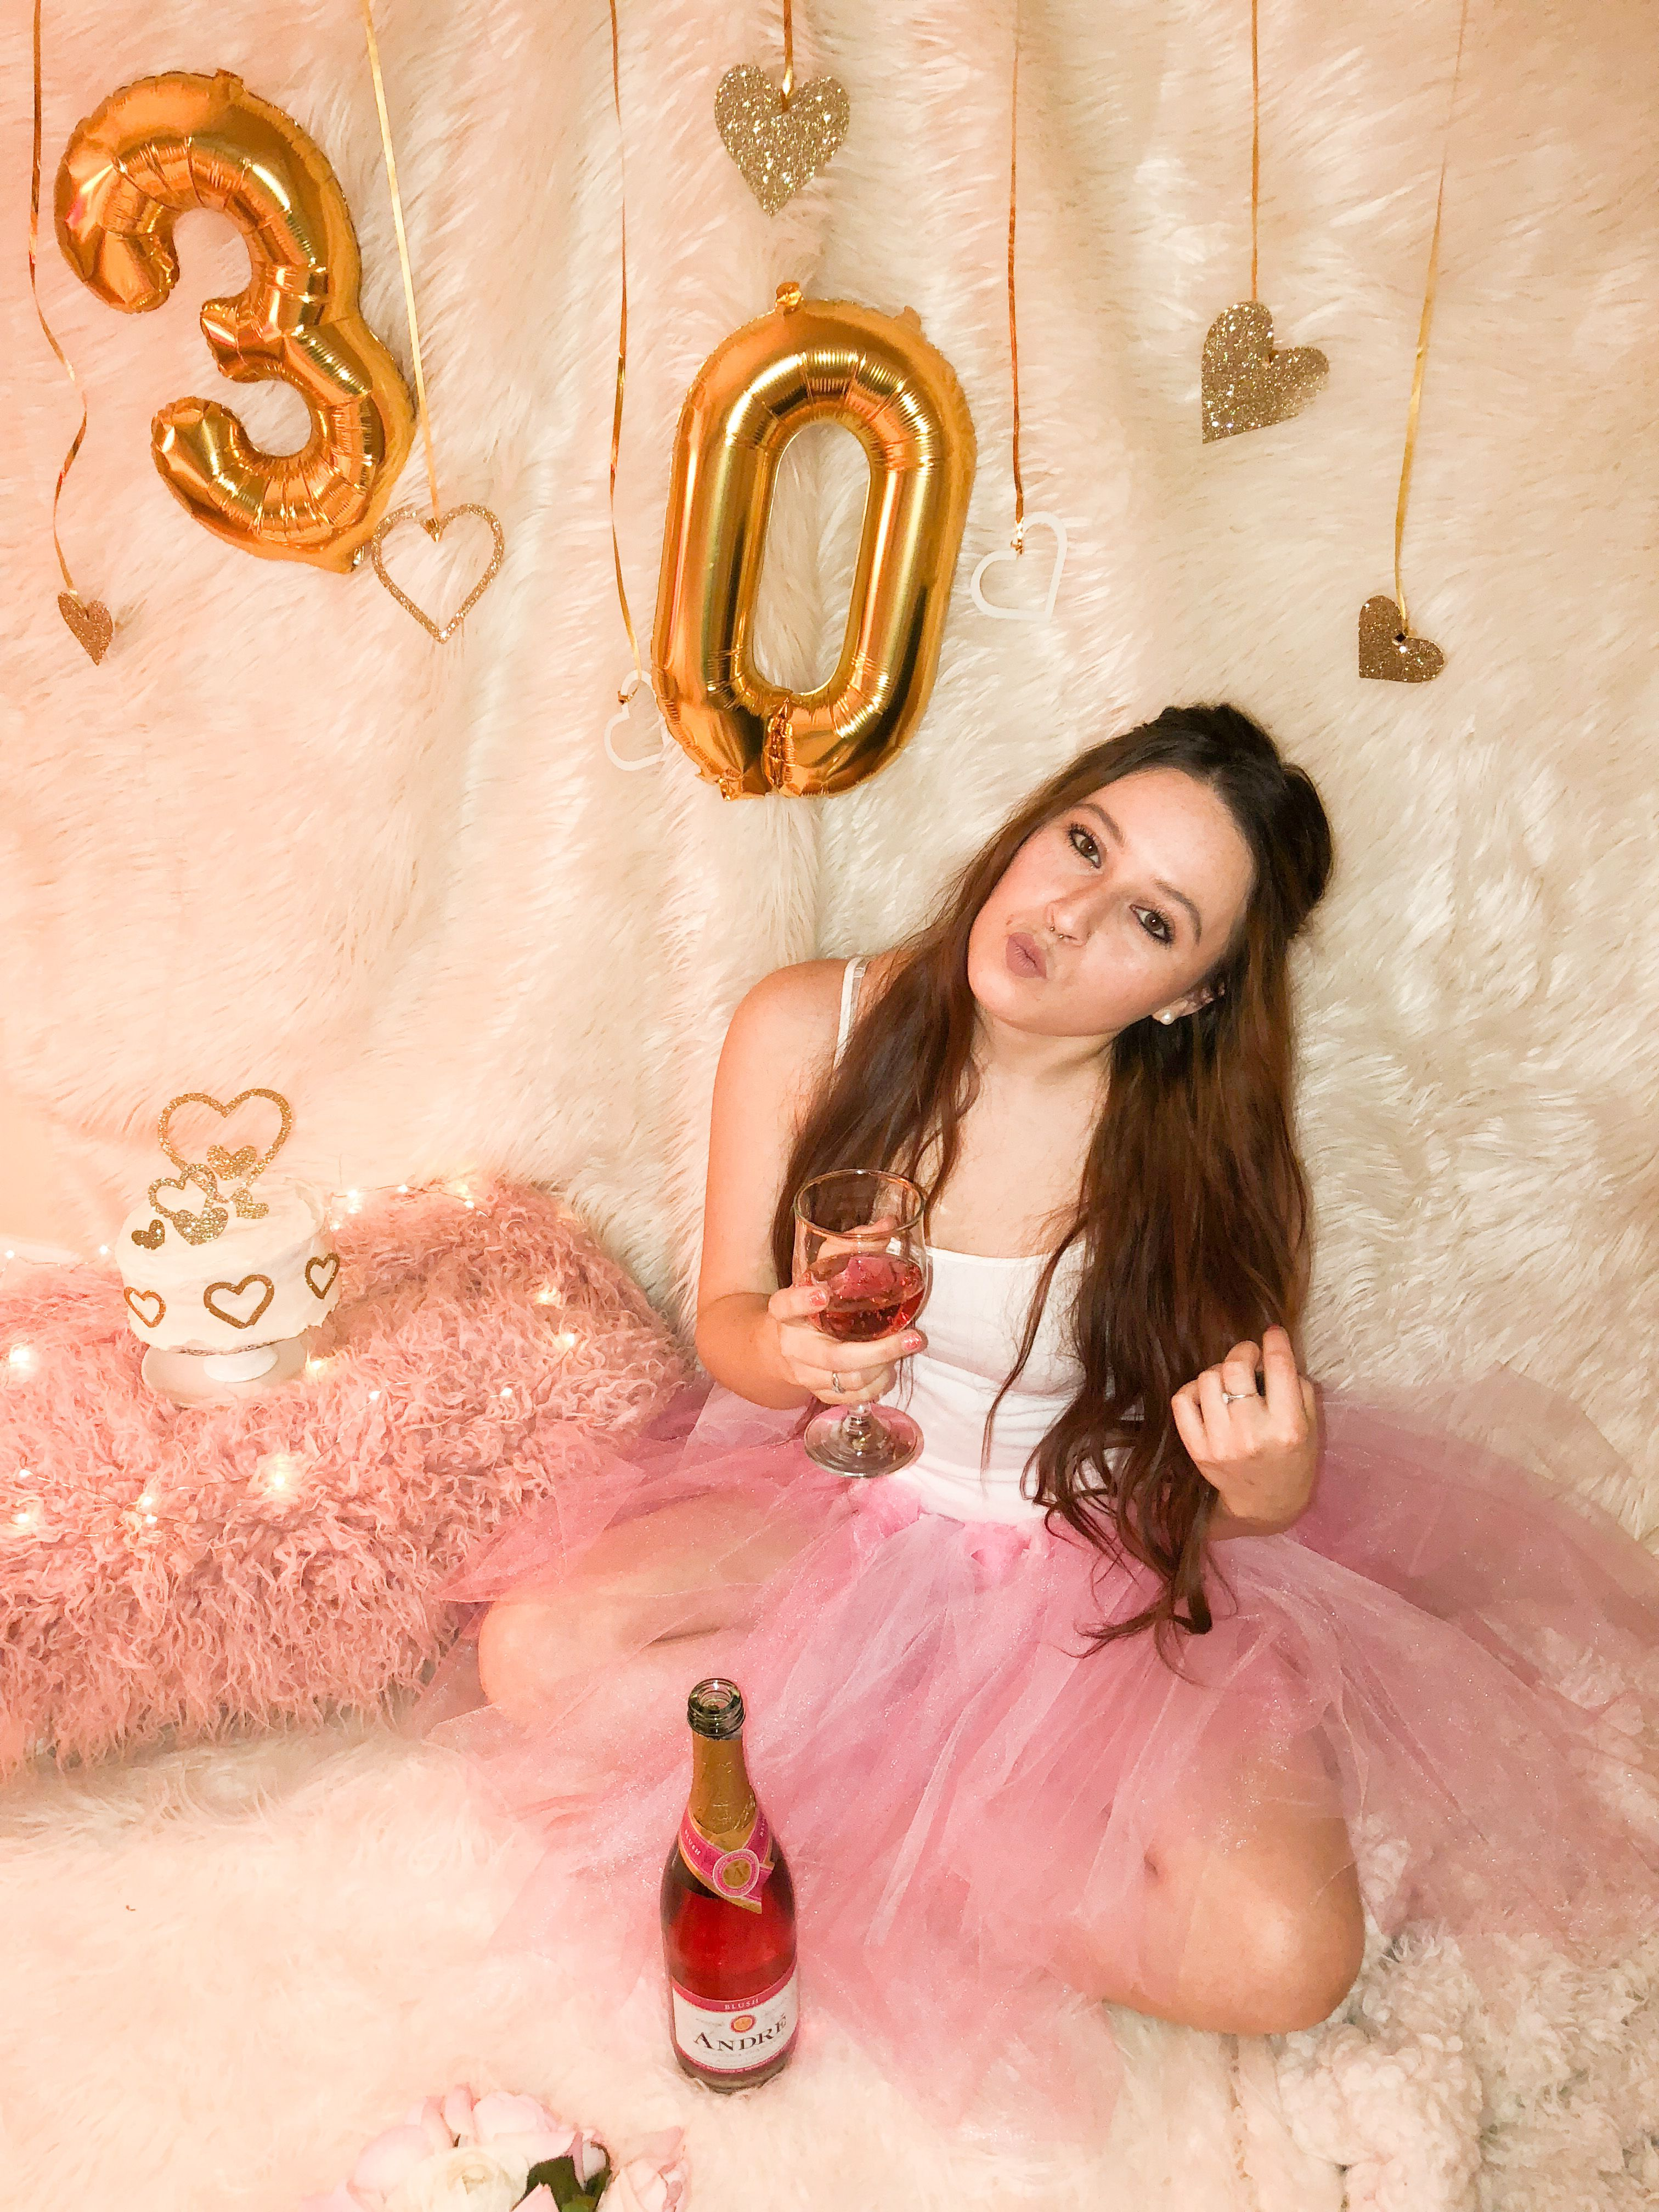 30 years old photo shoot 30th birthday themes old